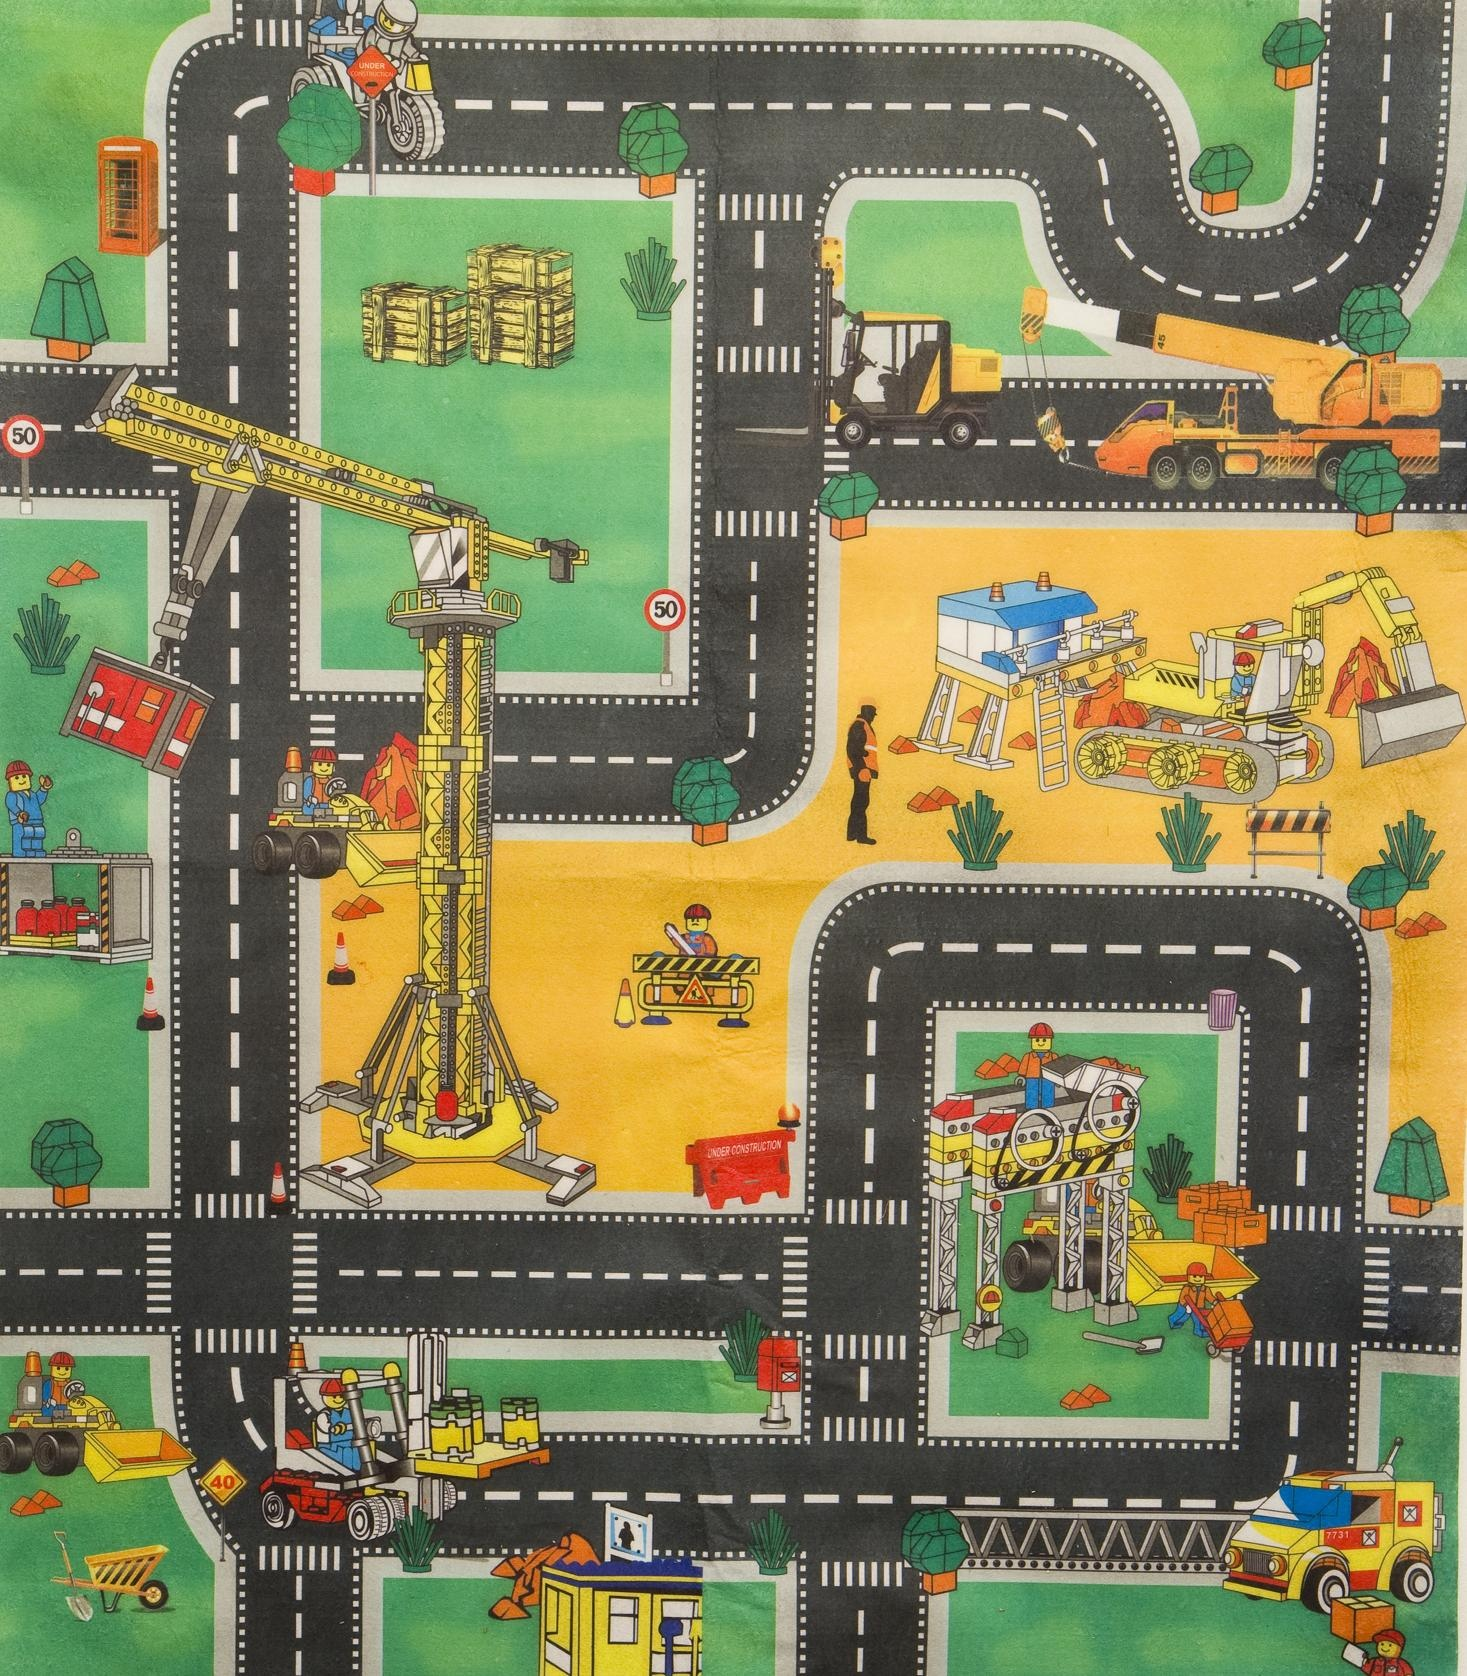 Construction Site Toys For Boys : Car road police fire or construction playmat kids boys